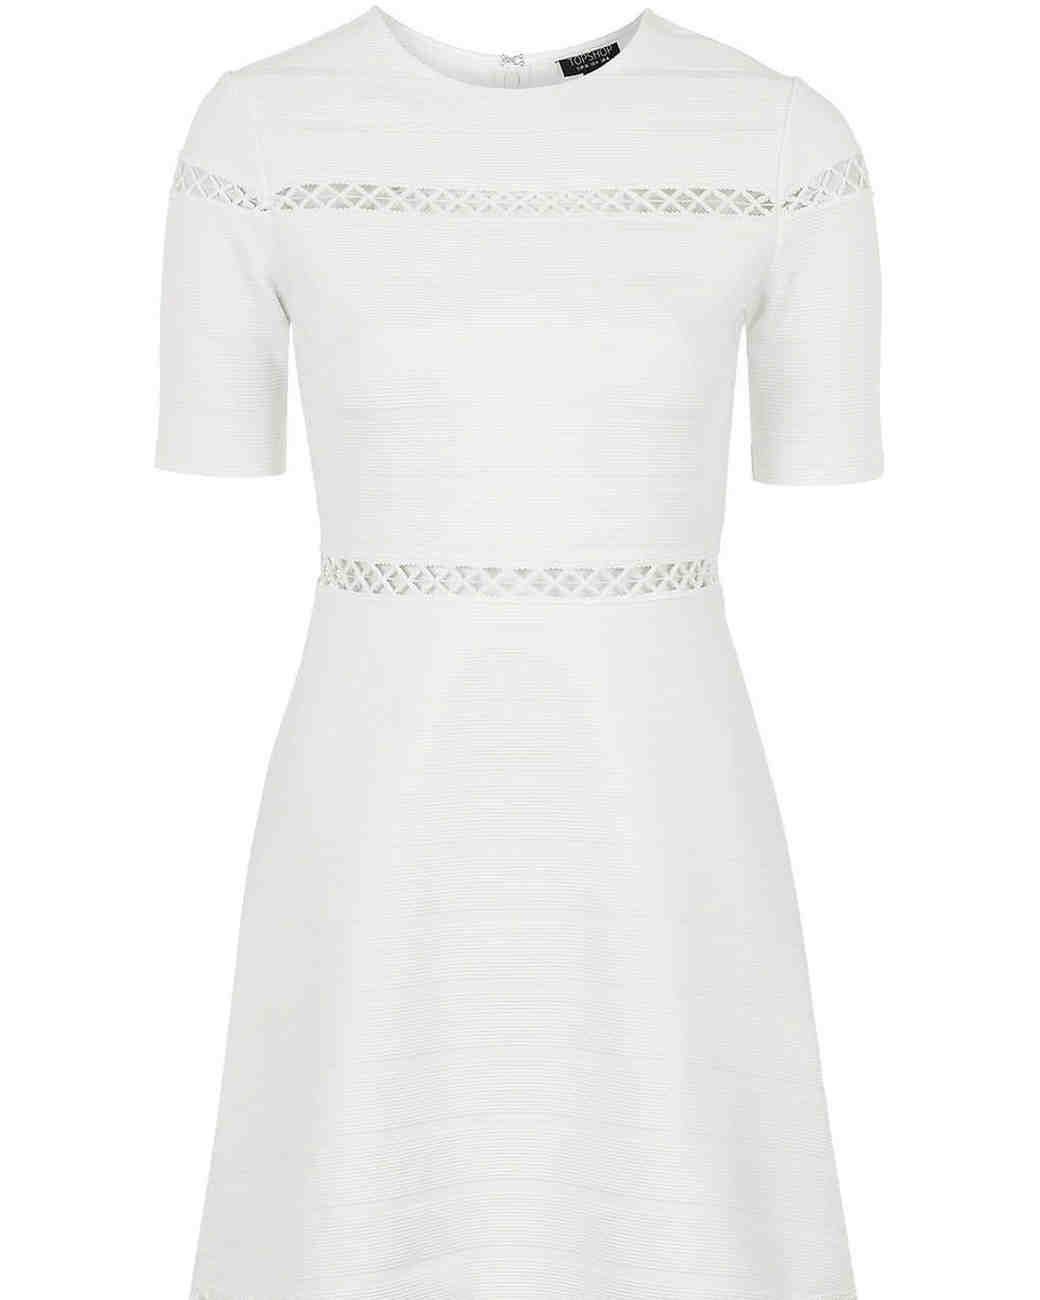 bridal-shower-dress-topshop-embroidered-dress-0416.jpg